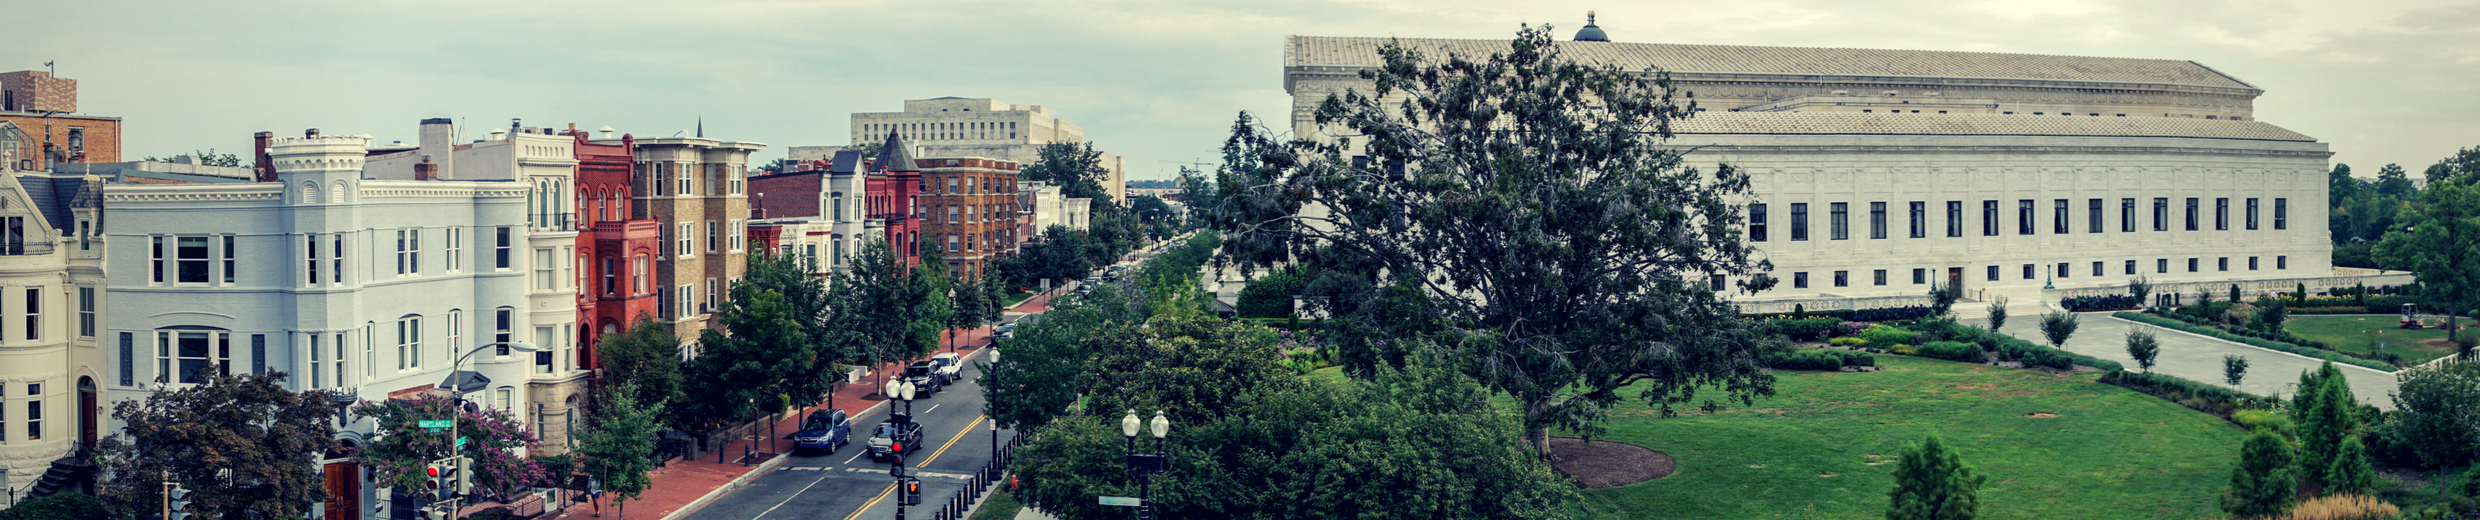 The view from our historic headquarters in Washington, DC